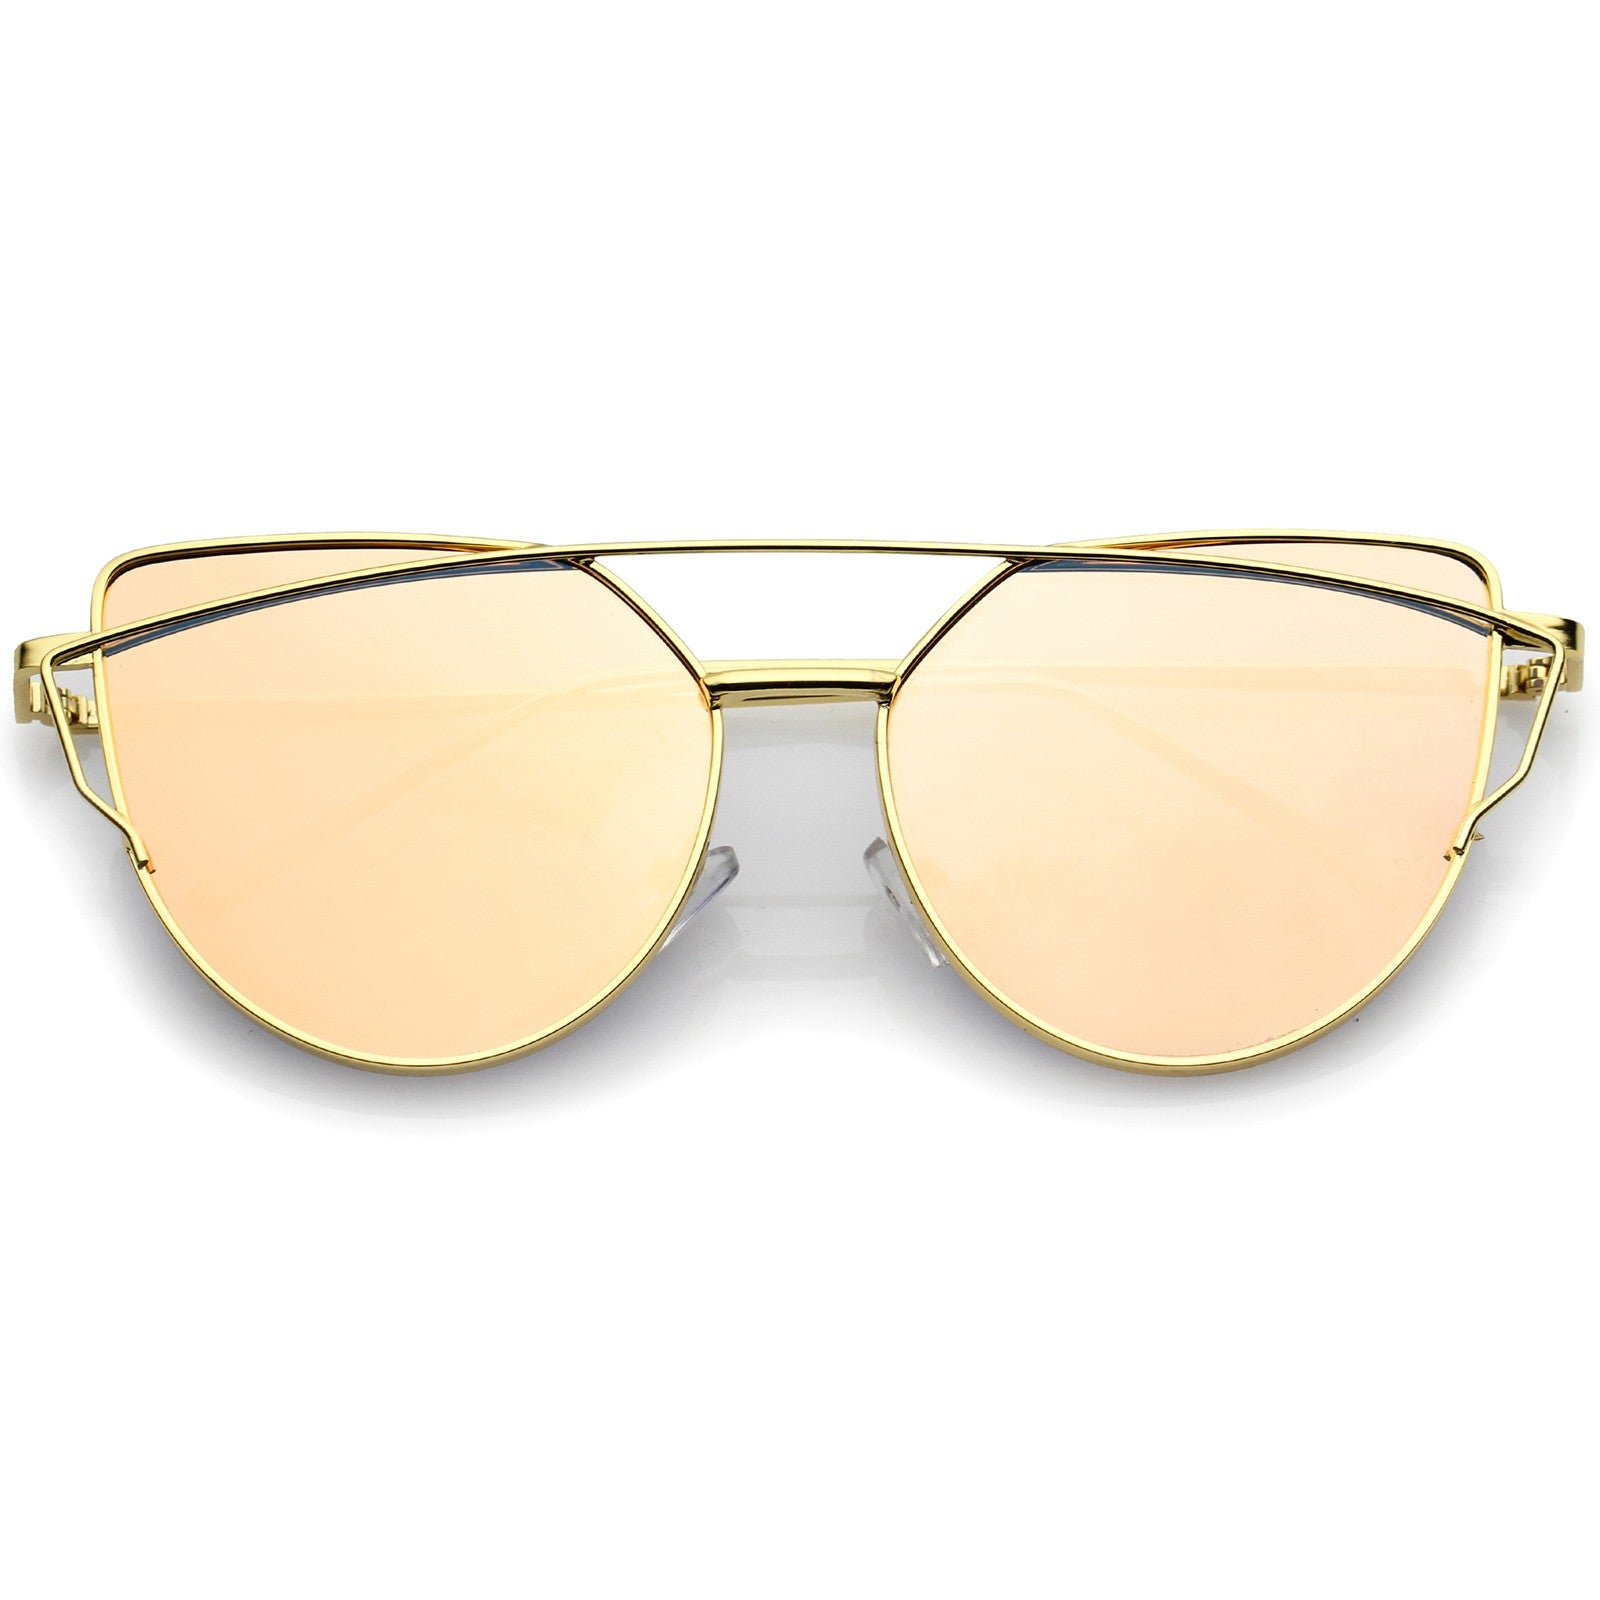 db21b7f72 Oversize Metal Frame Thin Temple Color Mirror Flat Lens Aviator Sunglasses  56mm - Glo Suite